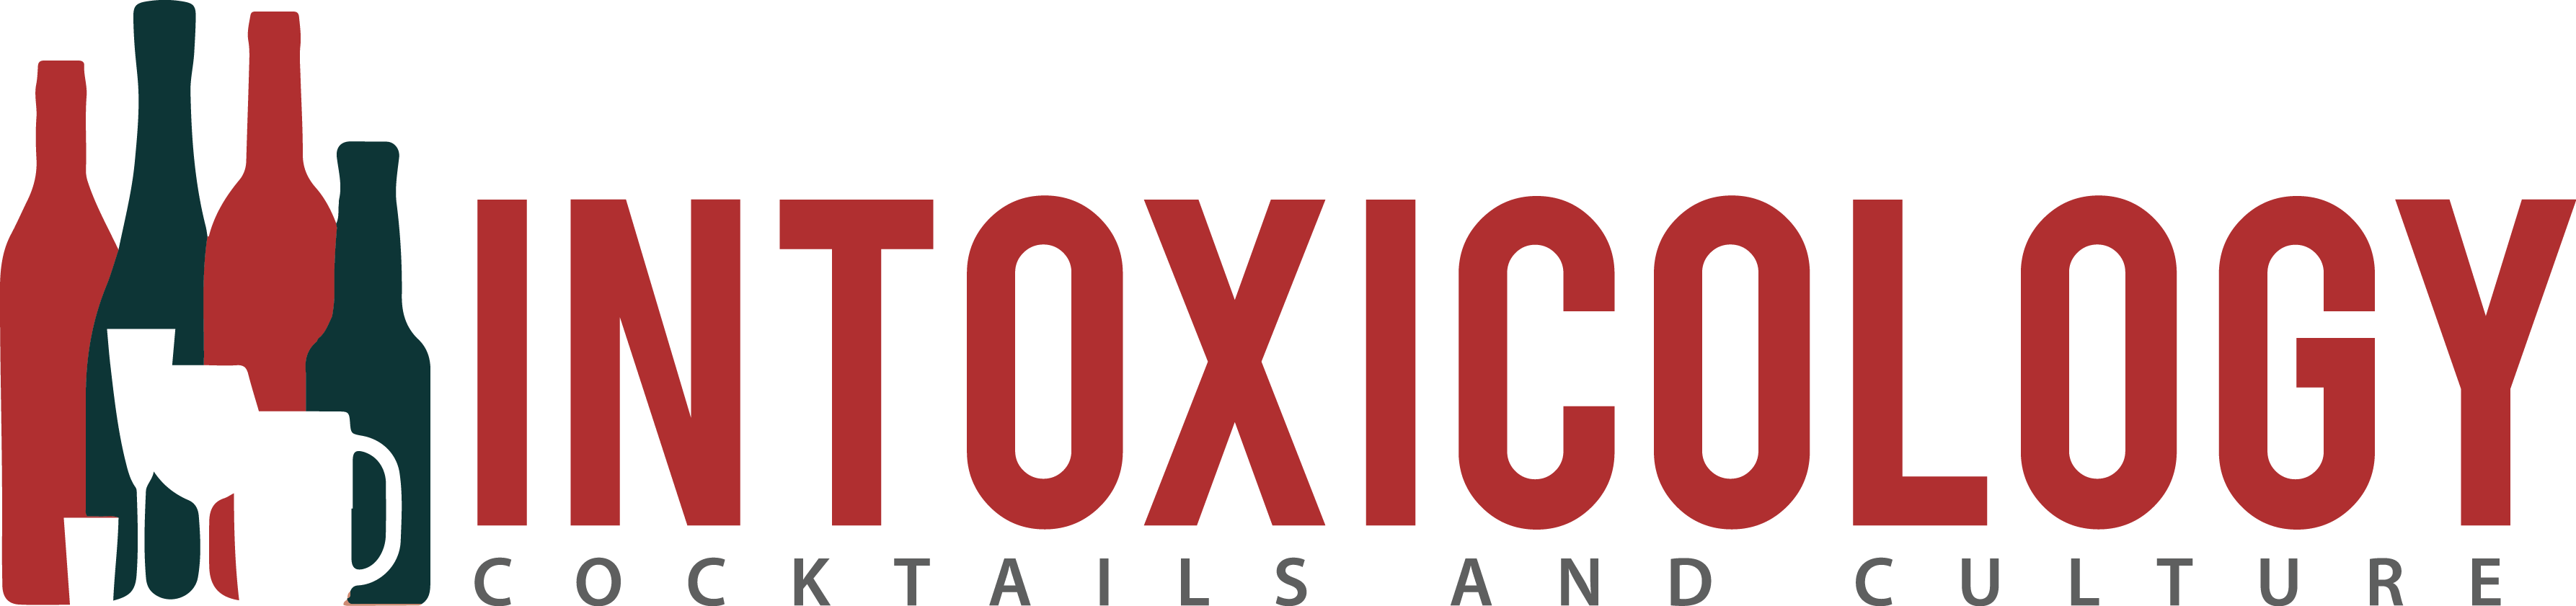 Intoxicology.com | Cocktails and Culture